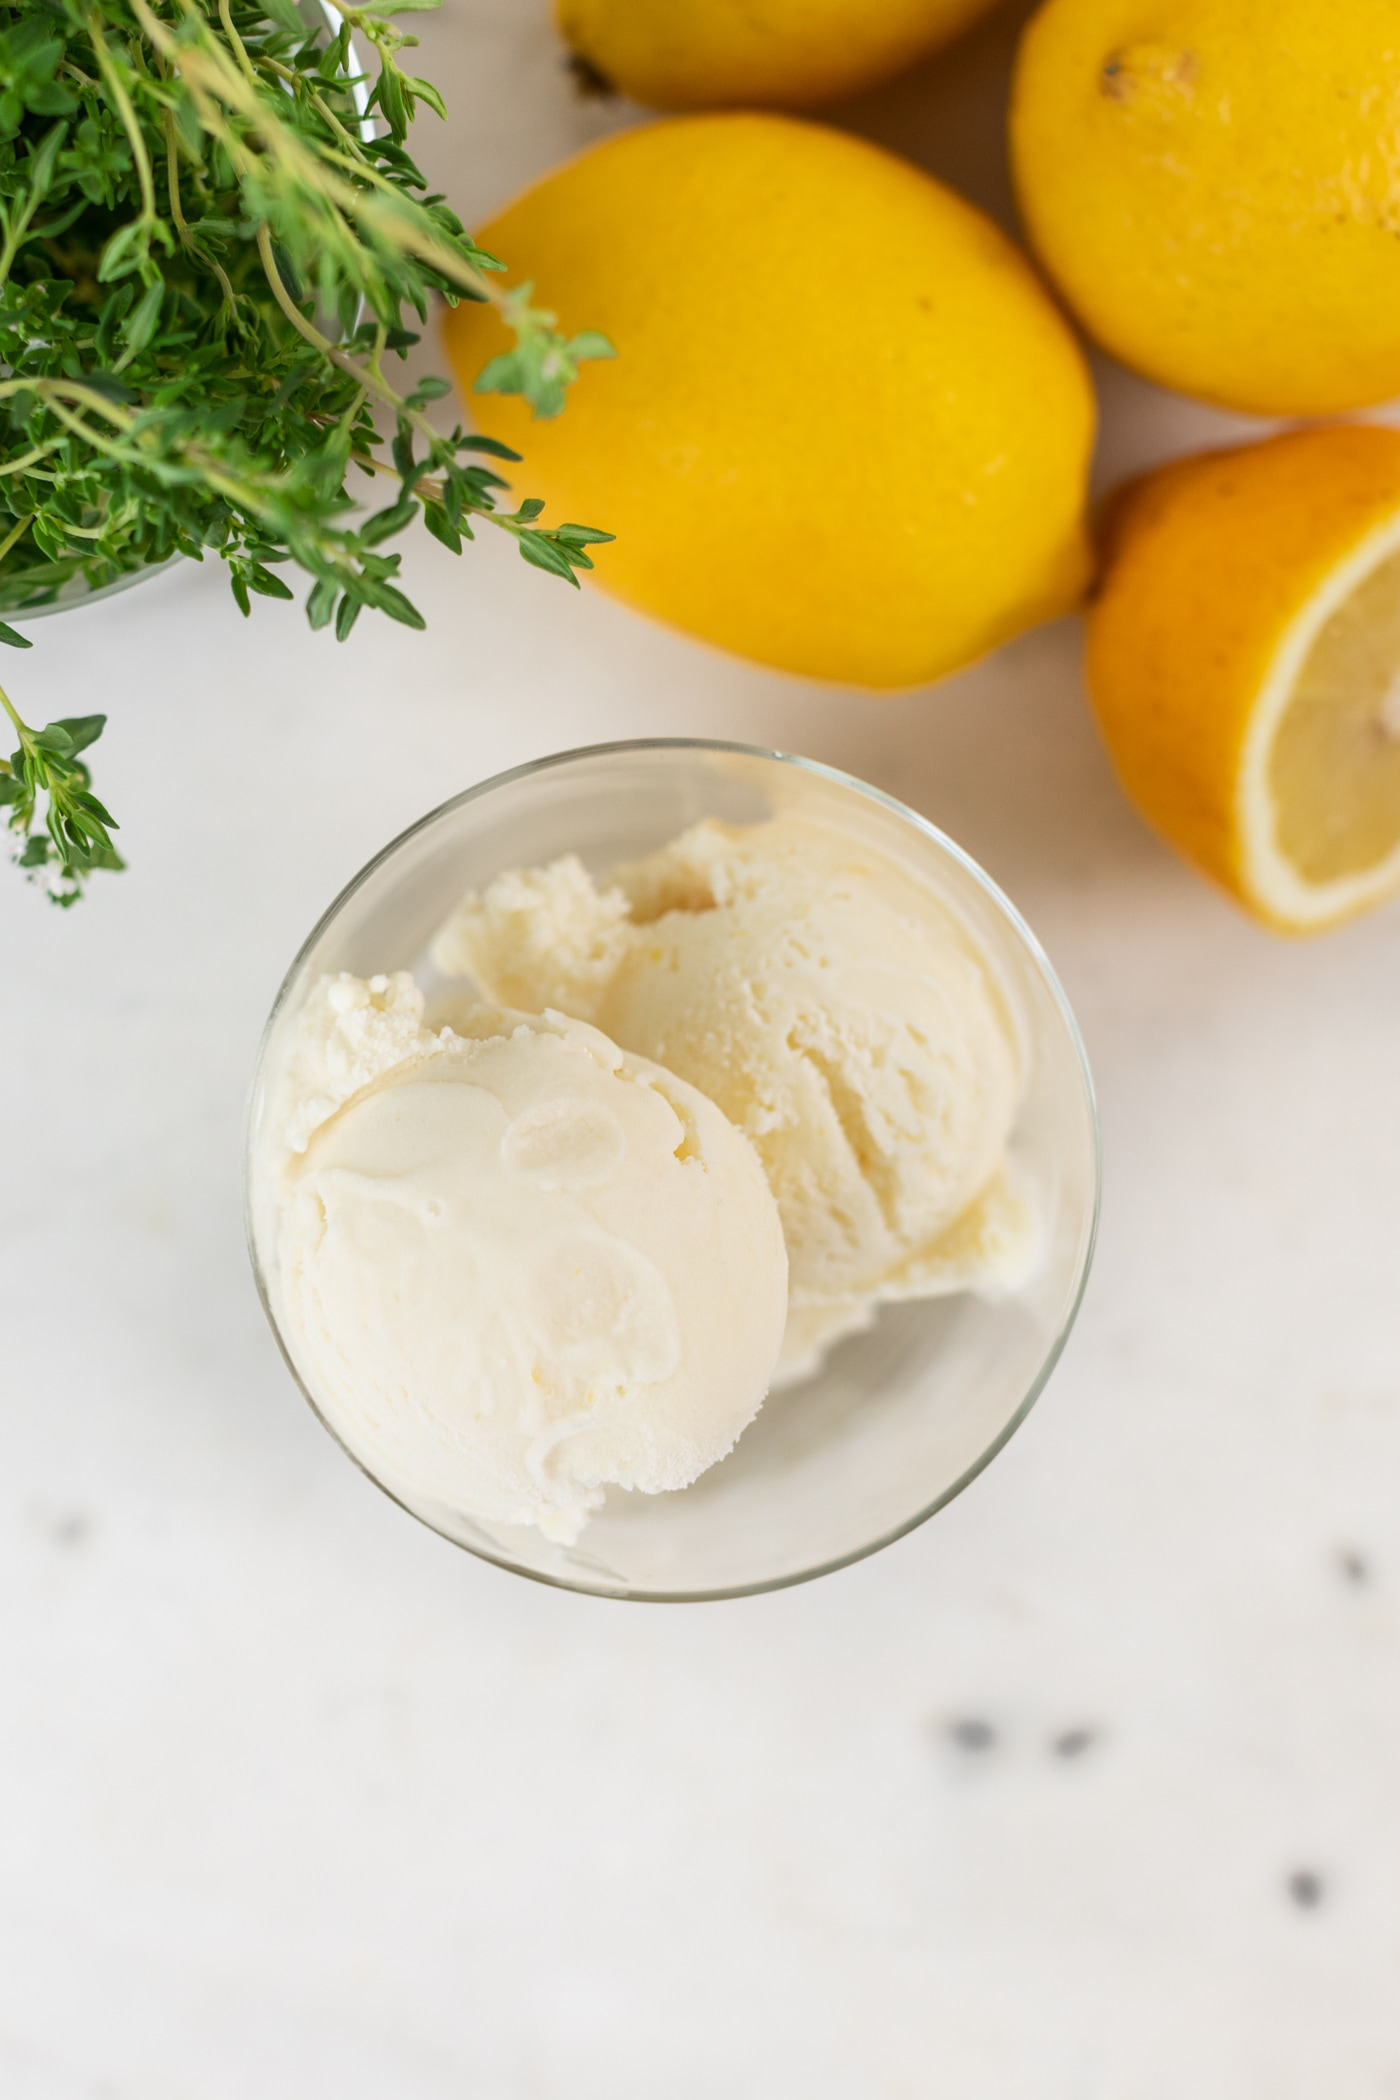 Top down view of lemon thyme ice cream in glass container with lemons and thyme in background all on marble surface